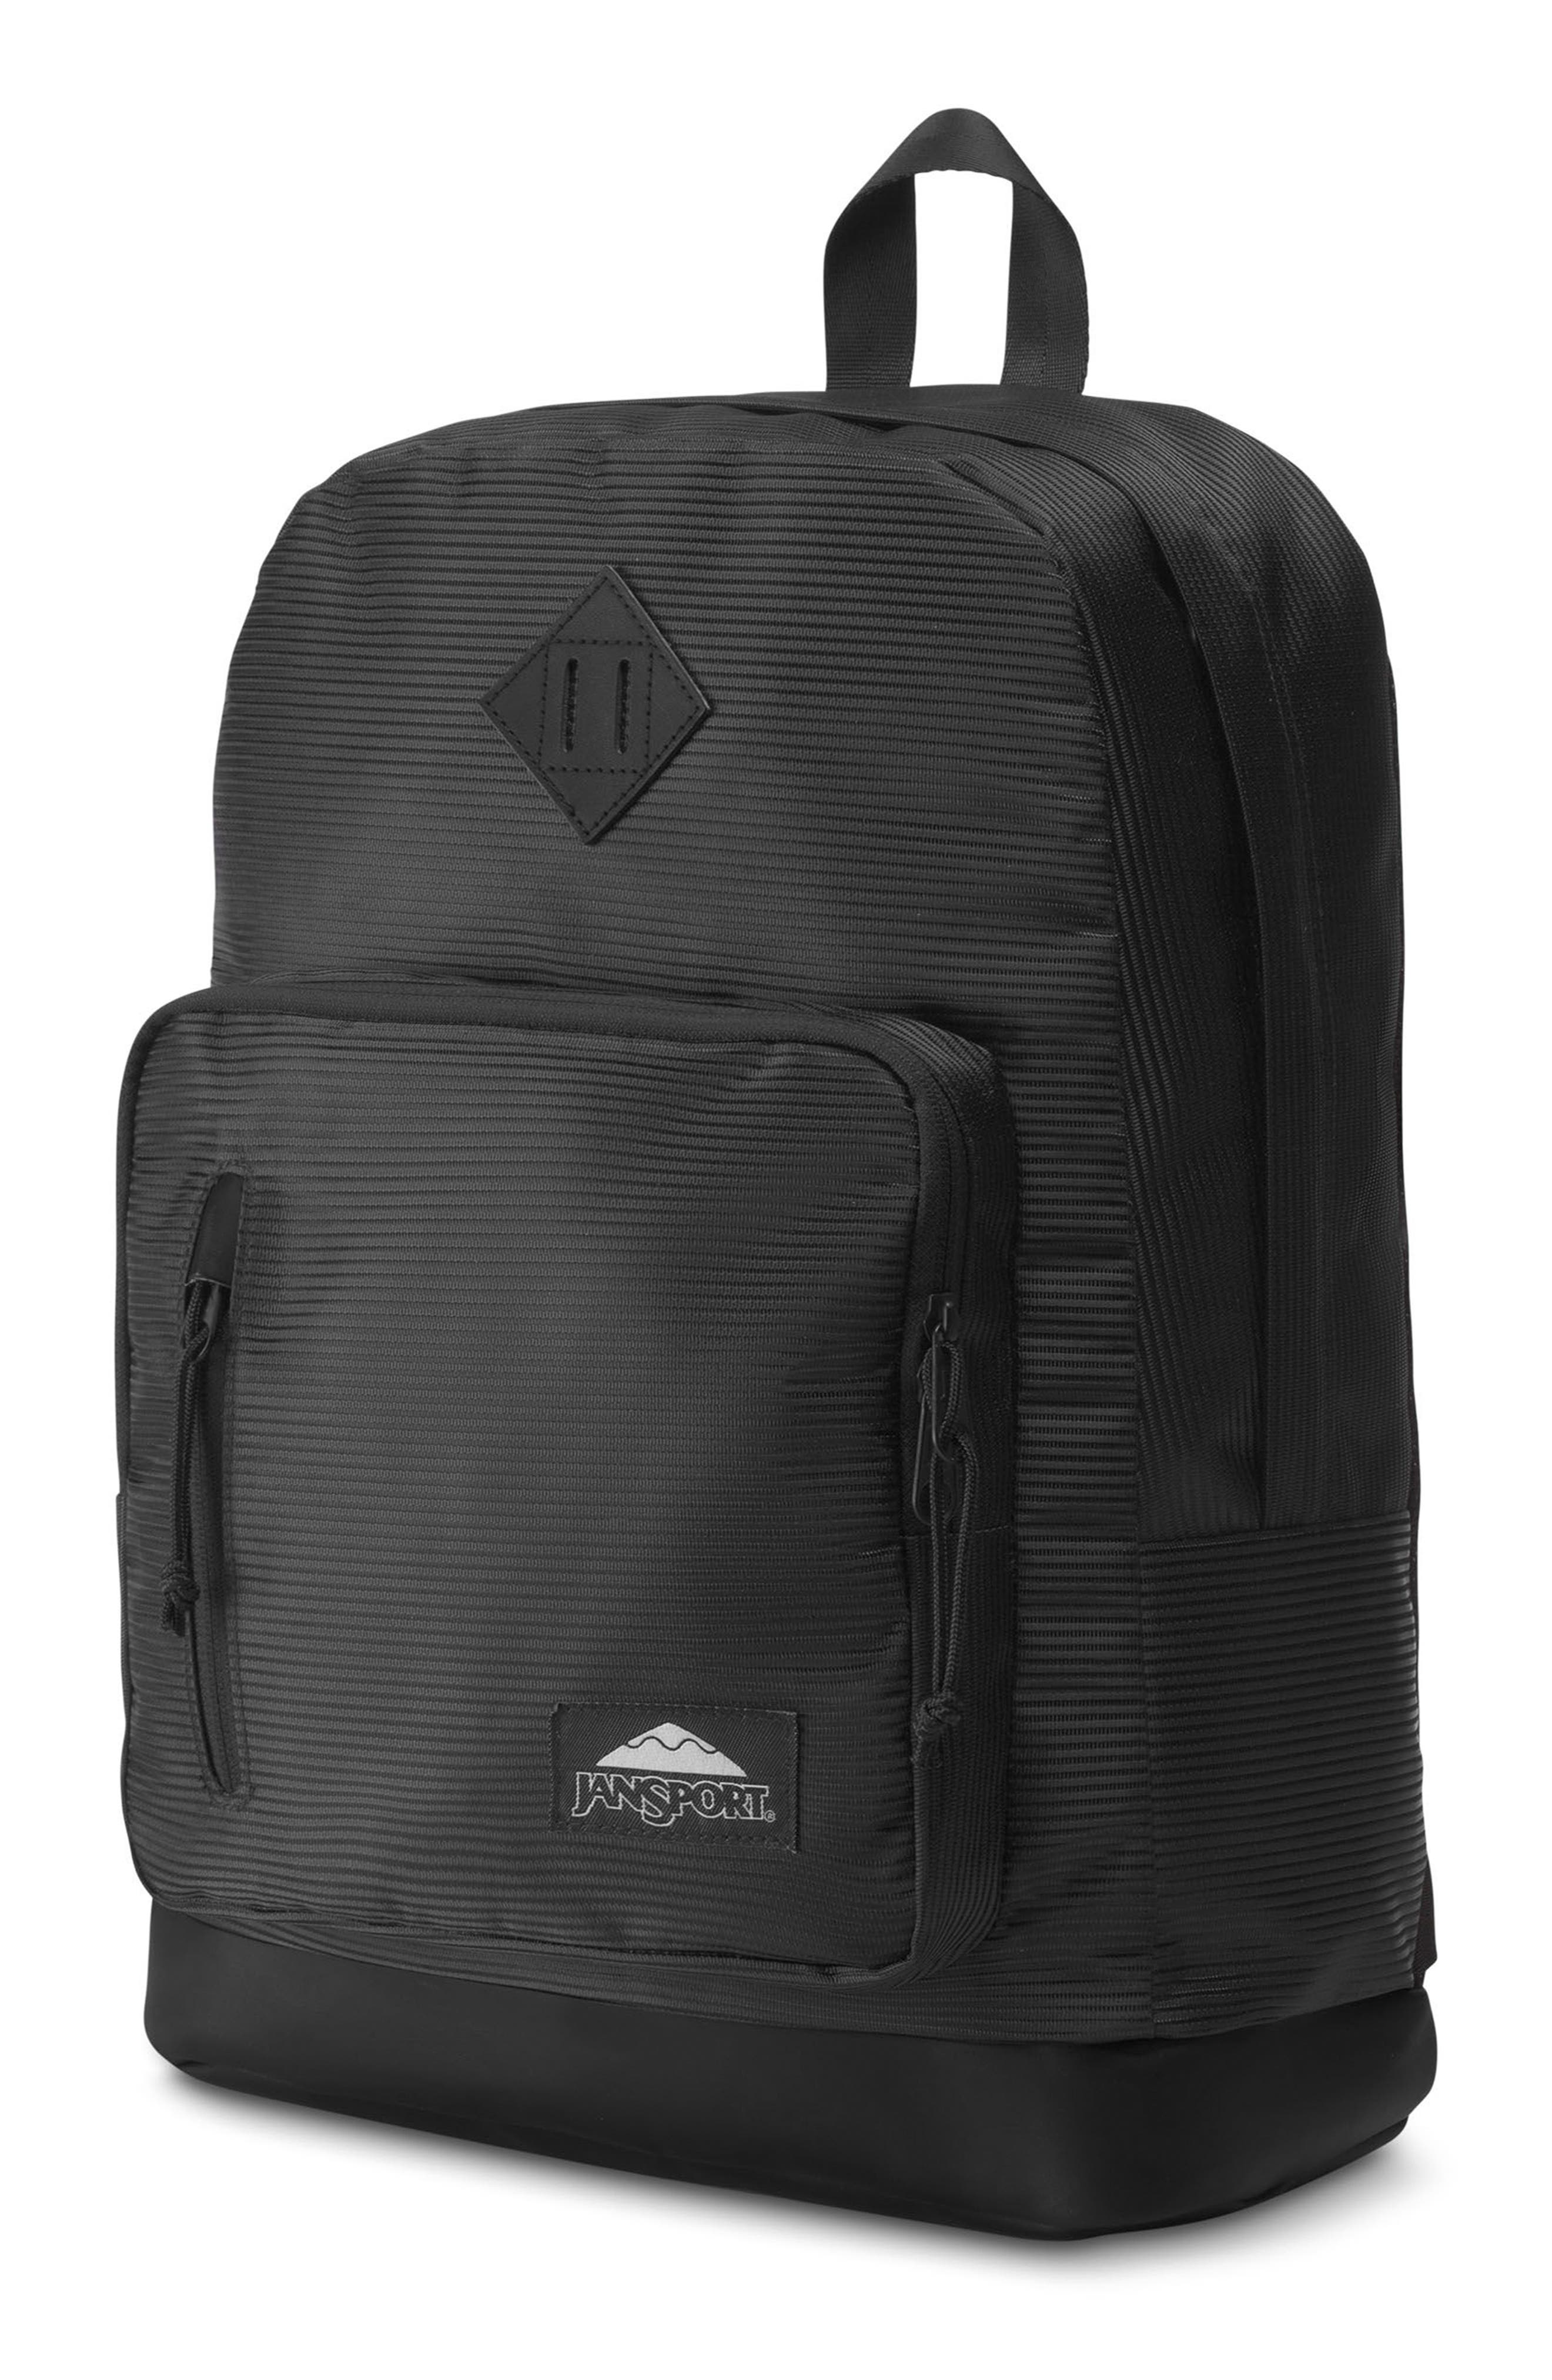 JANSPORT,                             Axiom Backpack,                             Alternate thumbnail 4, color,                             001